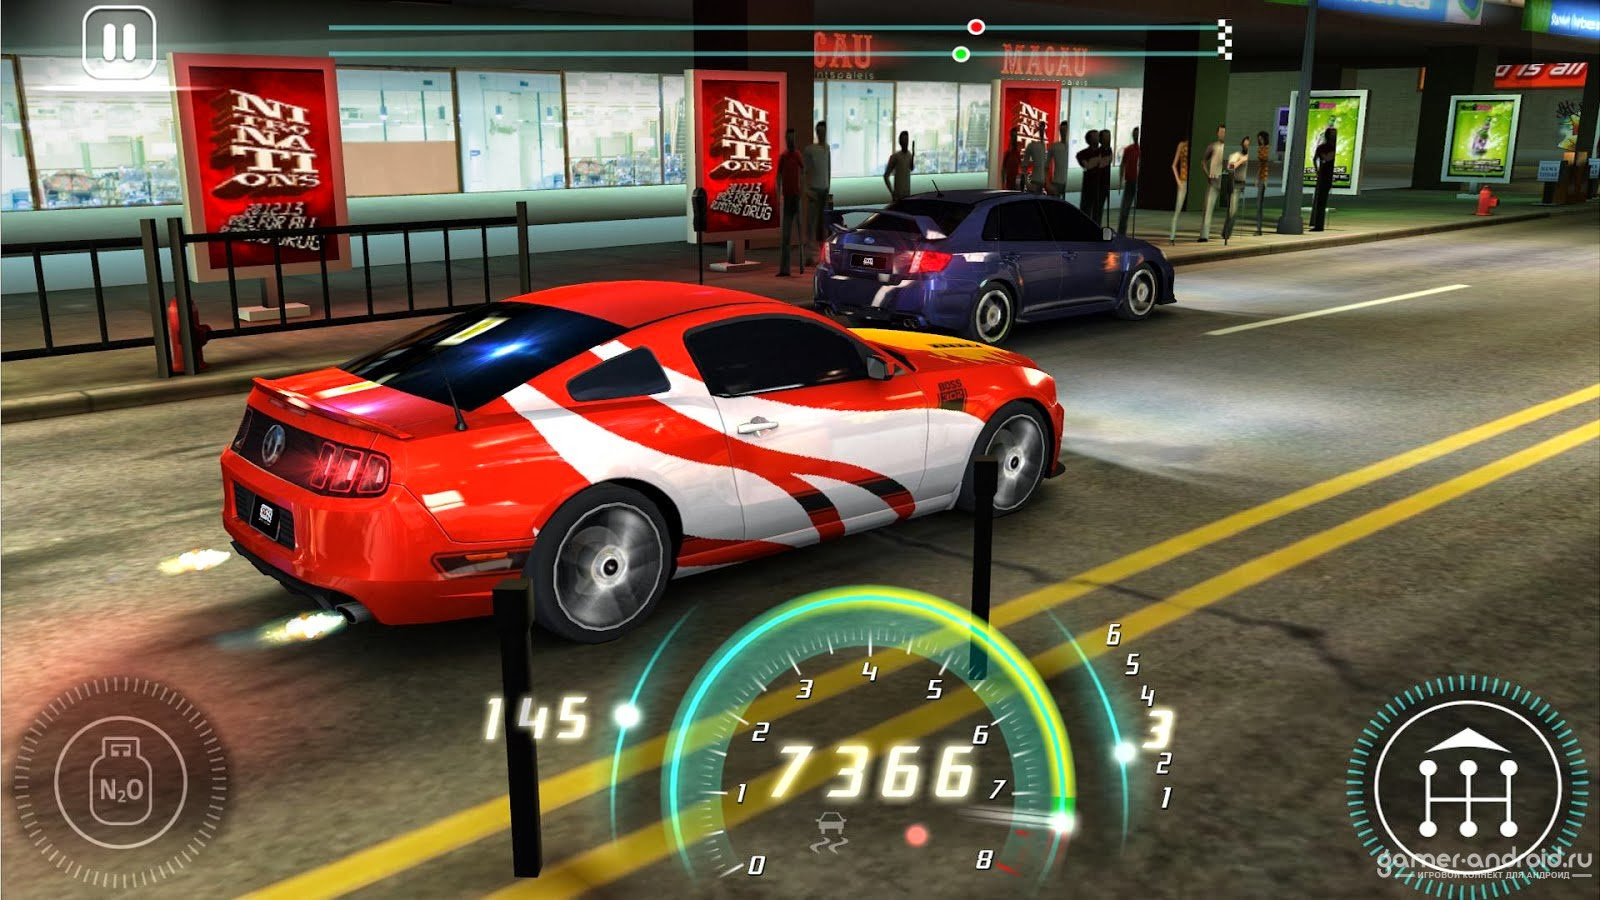 ... Nation is a racing game. But need you know that this game still beta